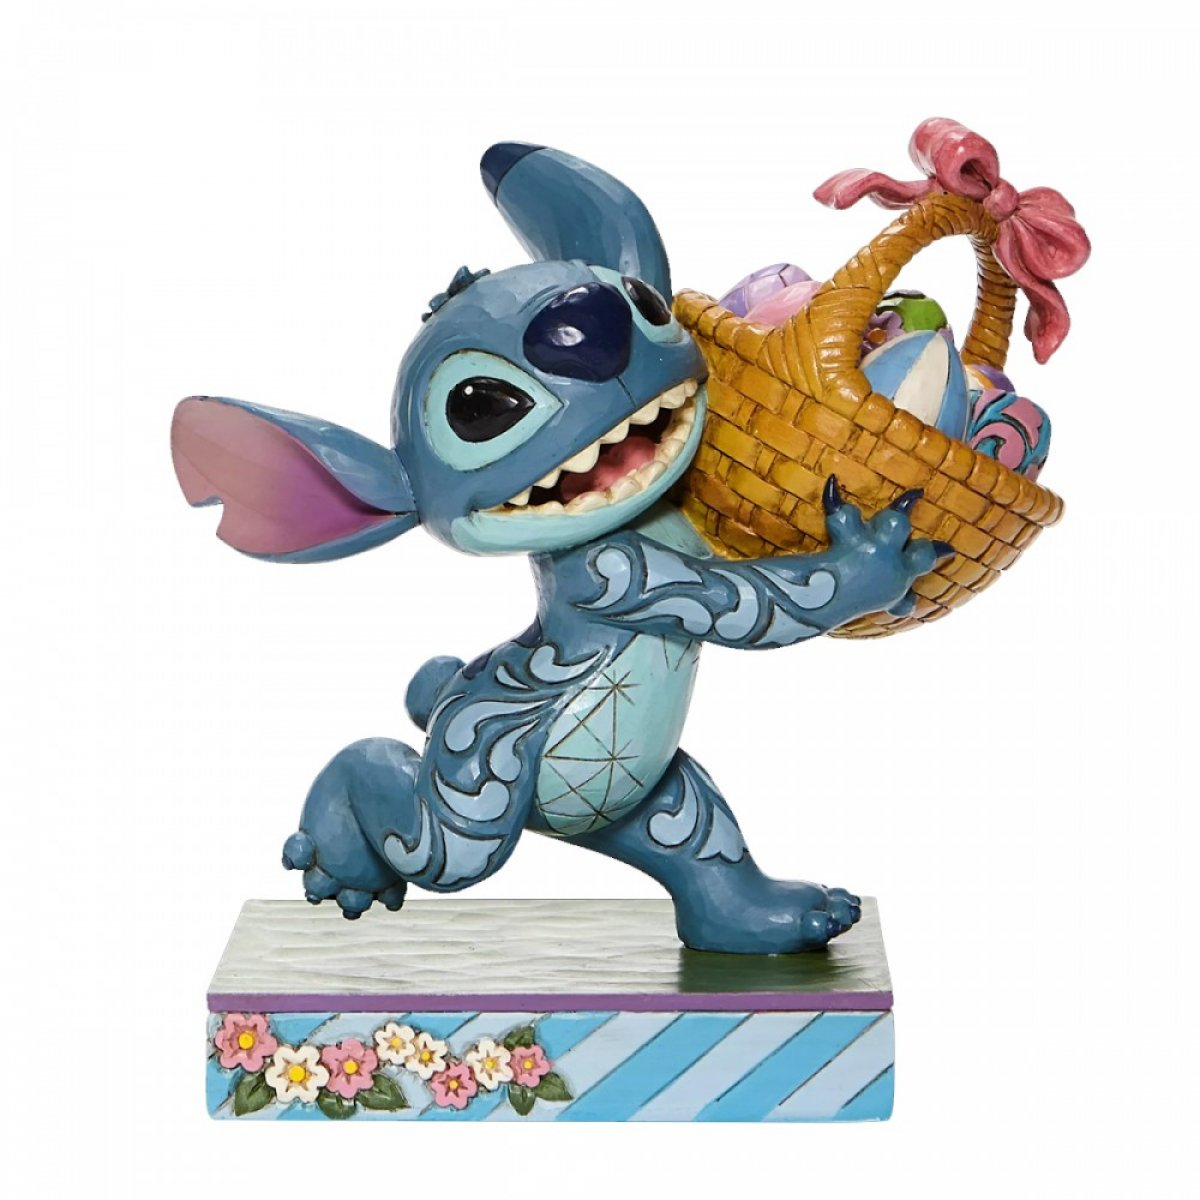 Pré-commande! Lilo et Stitch - Disney Traditions : Figurine Stitch